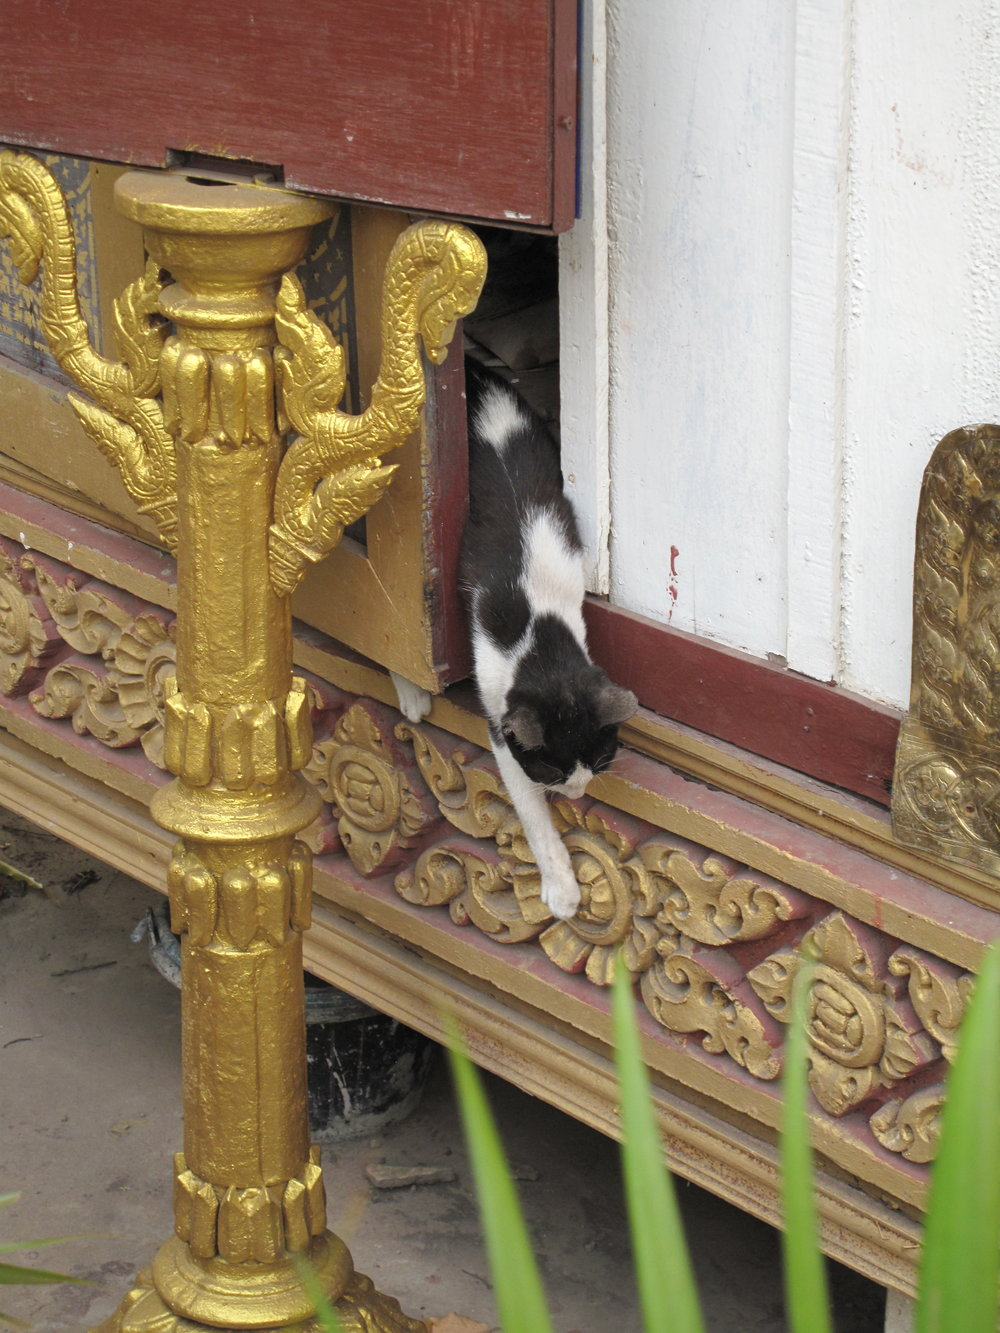 Cute stray kitty cat, Grand Palace, Phnom Penh